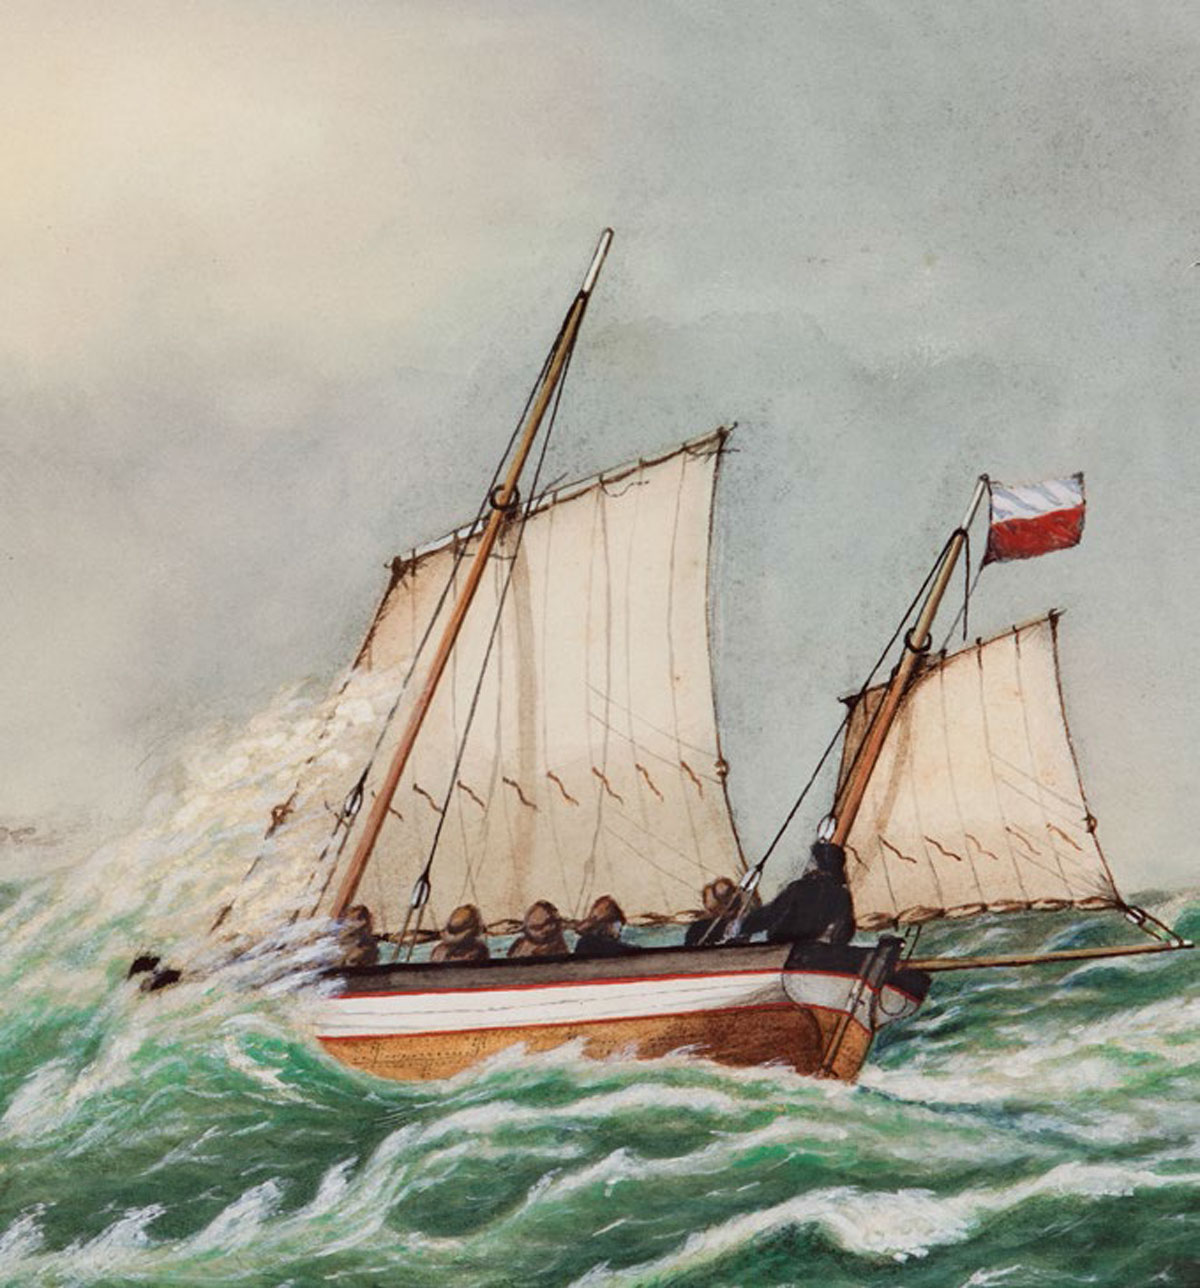 Pilot Painter - works on paper by Capt. George A.D. Forsyth